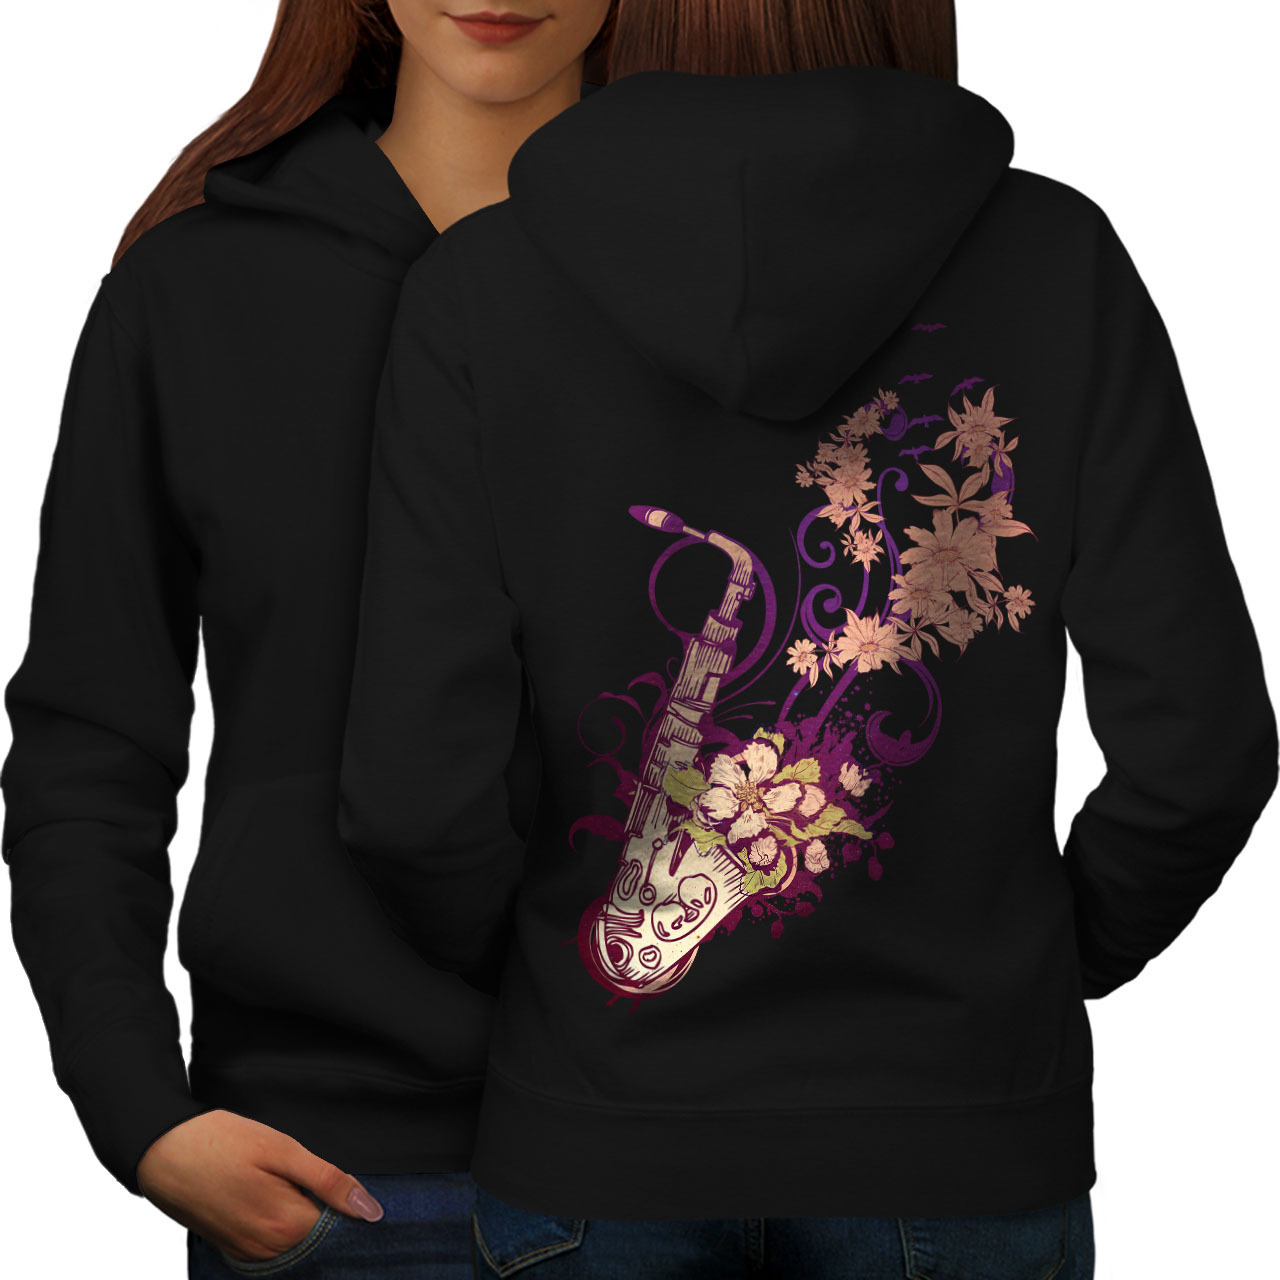 Primary image for Saxophone Jazzy Tune Sweatshirt Hoody Instrument Women Hoodie Back